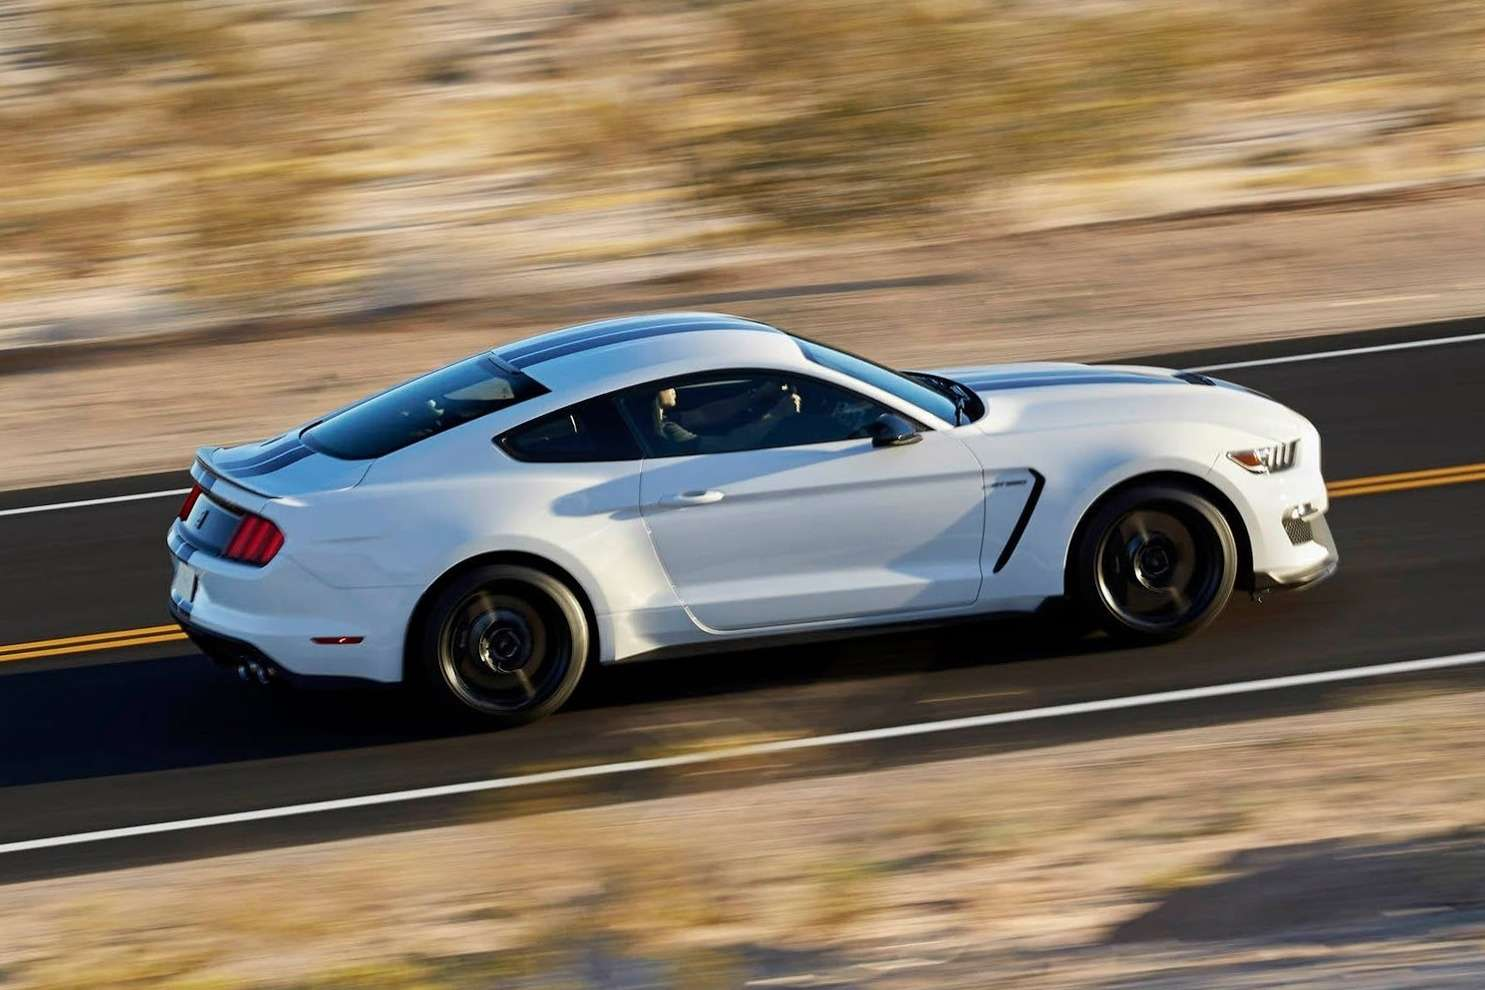 New-Ford-Mustang-Shelby-GT350-11